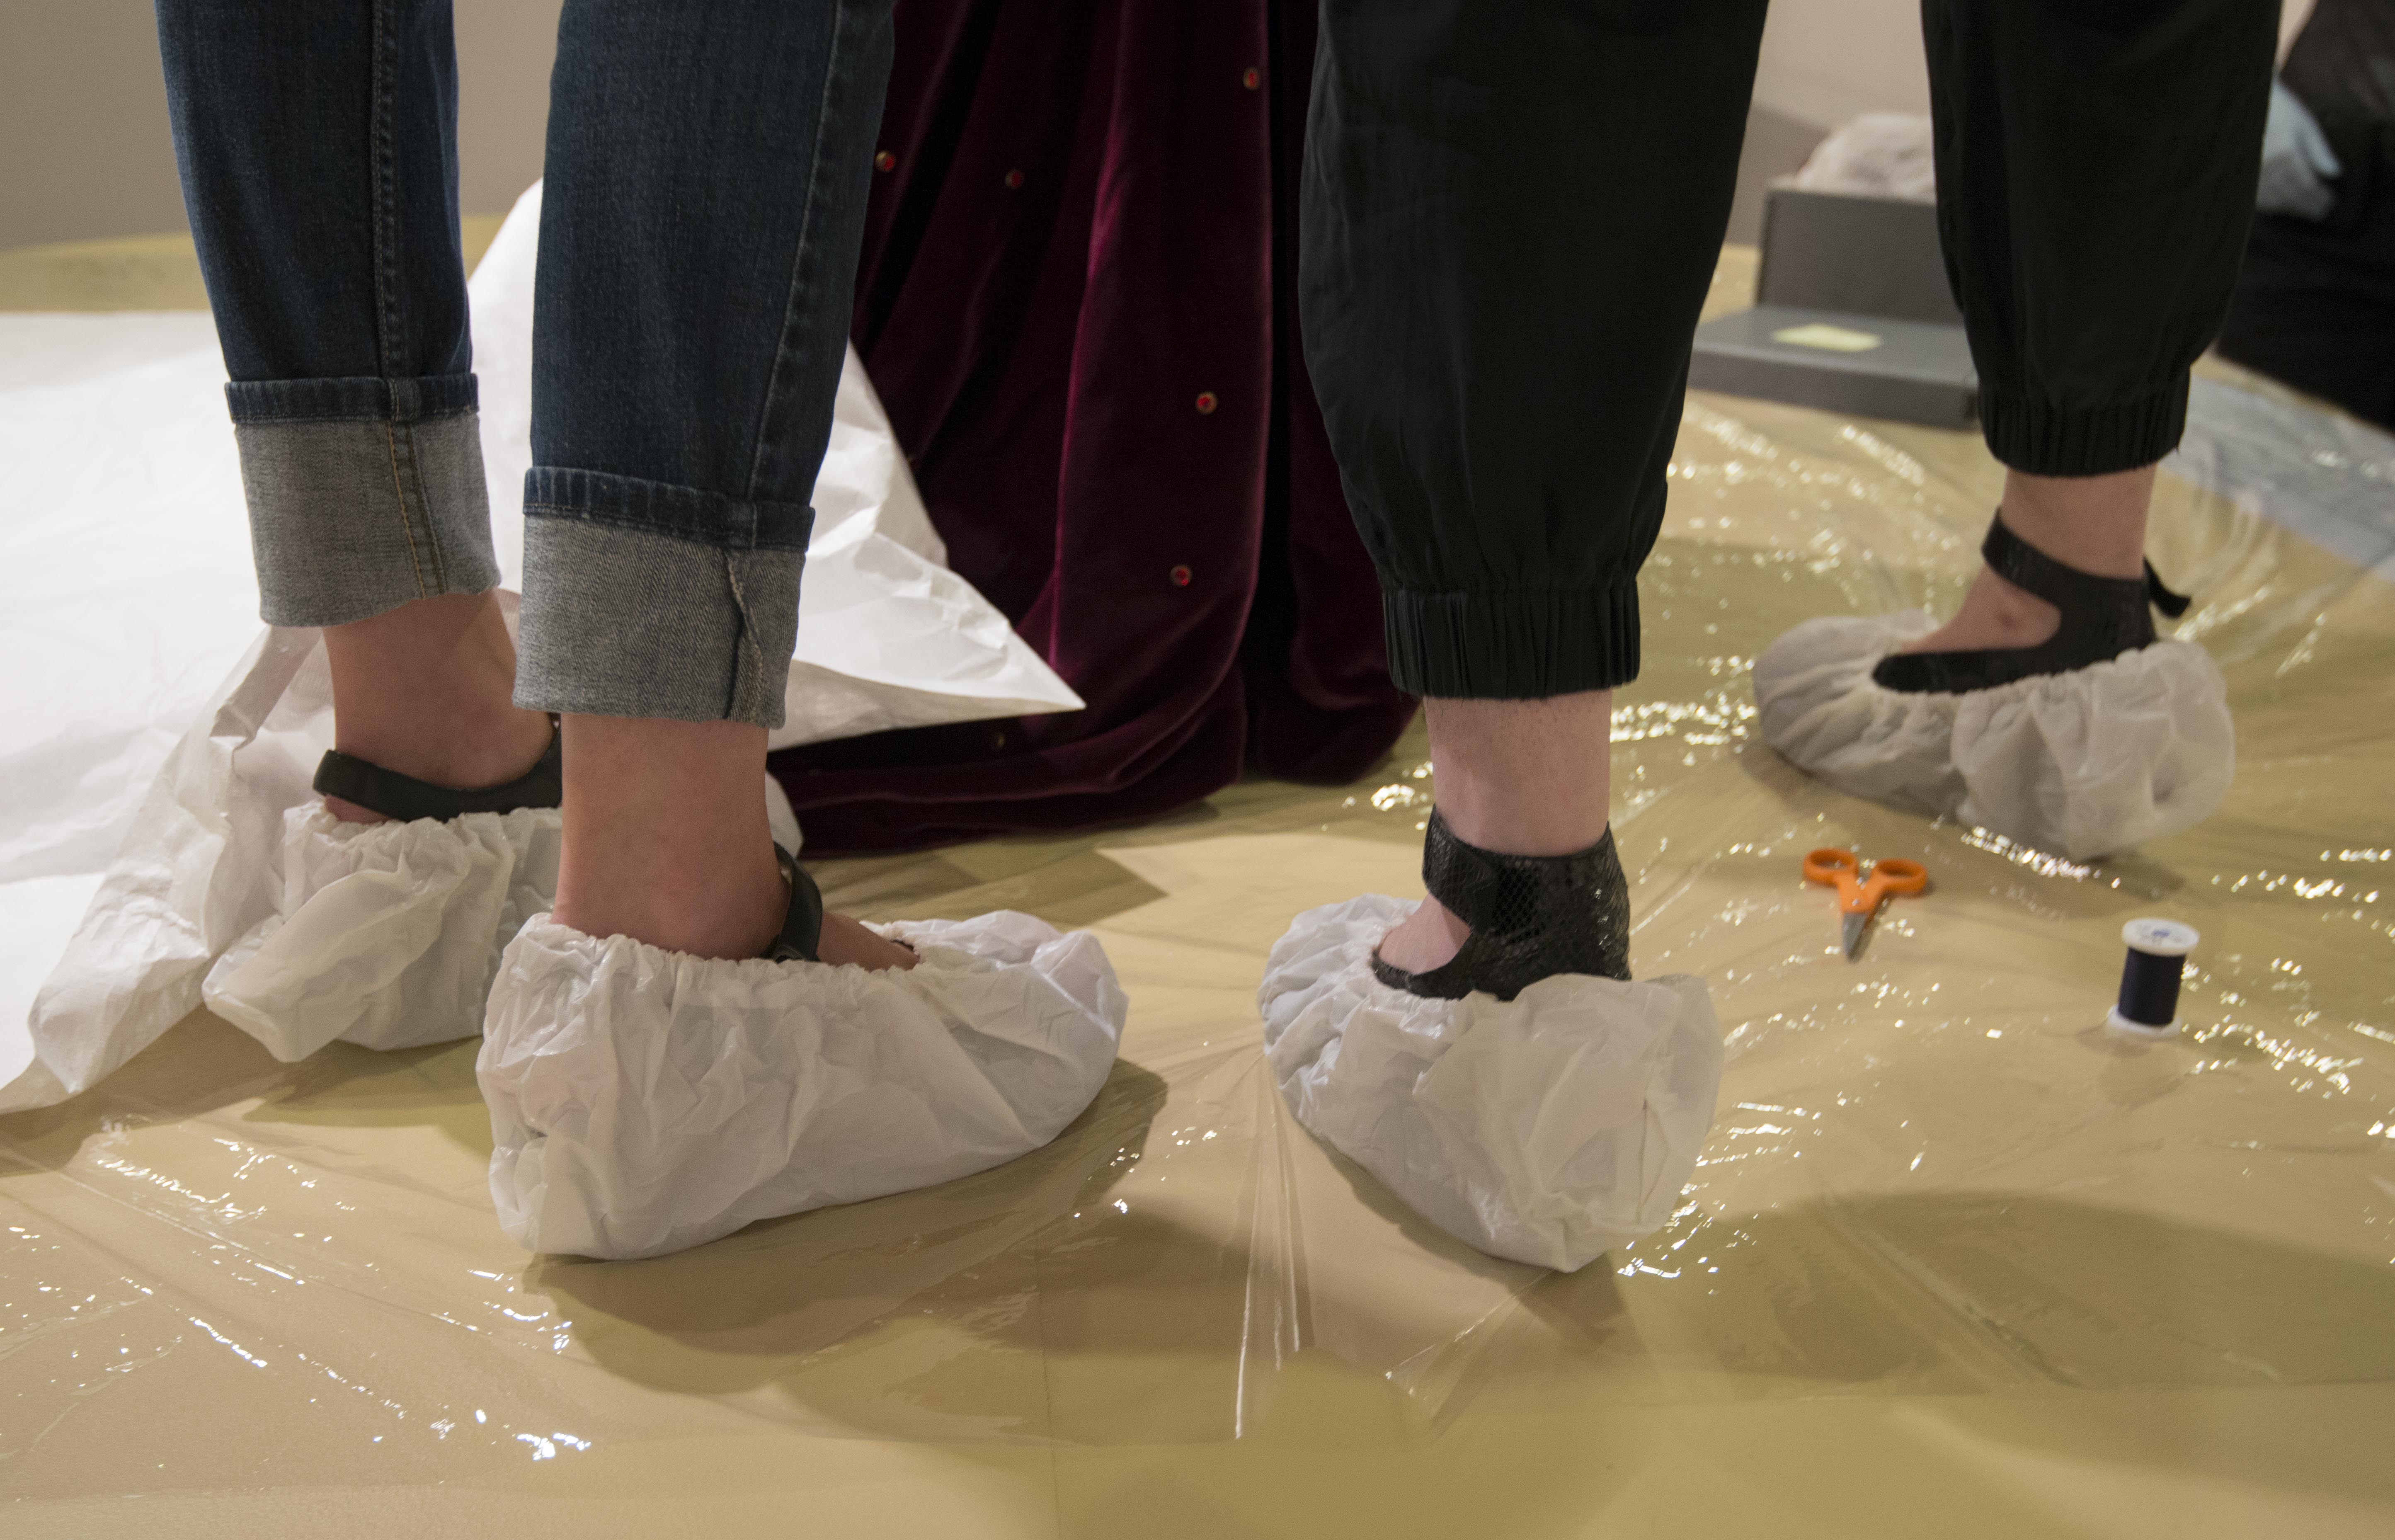 Nothing like some Tyvek booties to complete your installation outfit... Photo by Pete Smith